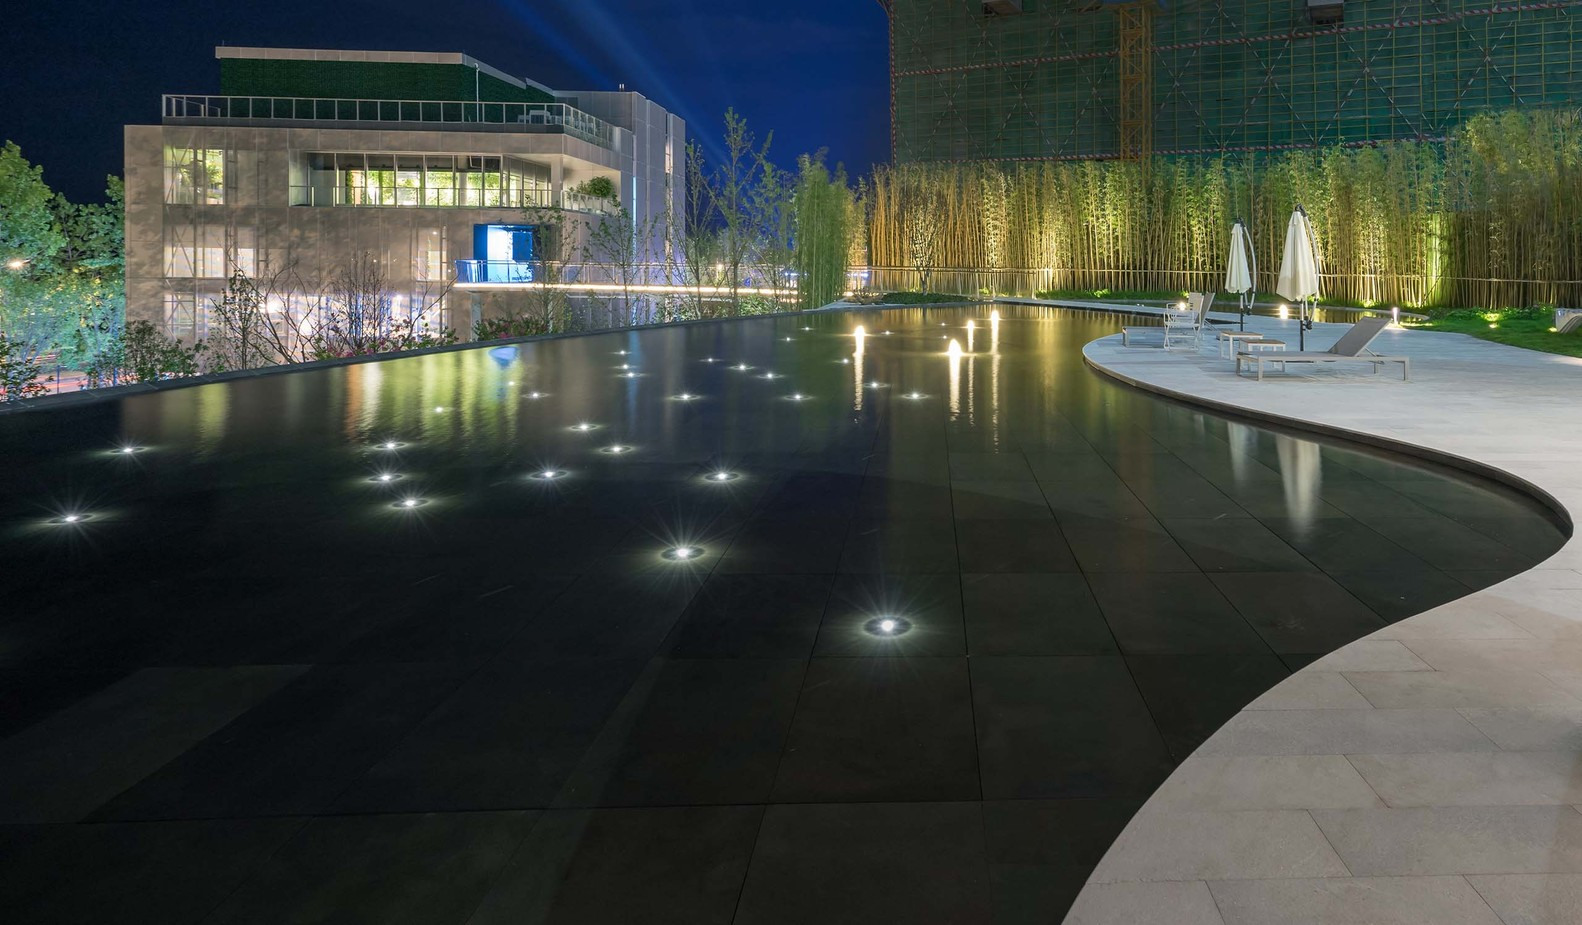 Gallery Of Lakeside Garden Topos Landscape Architects 15